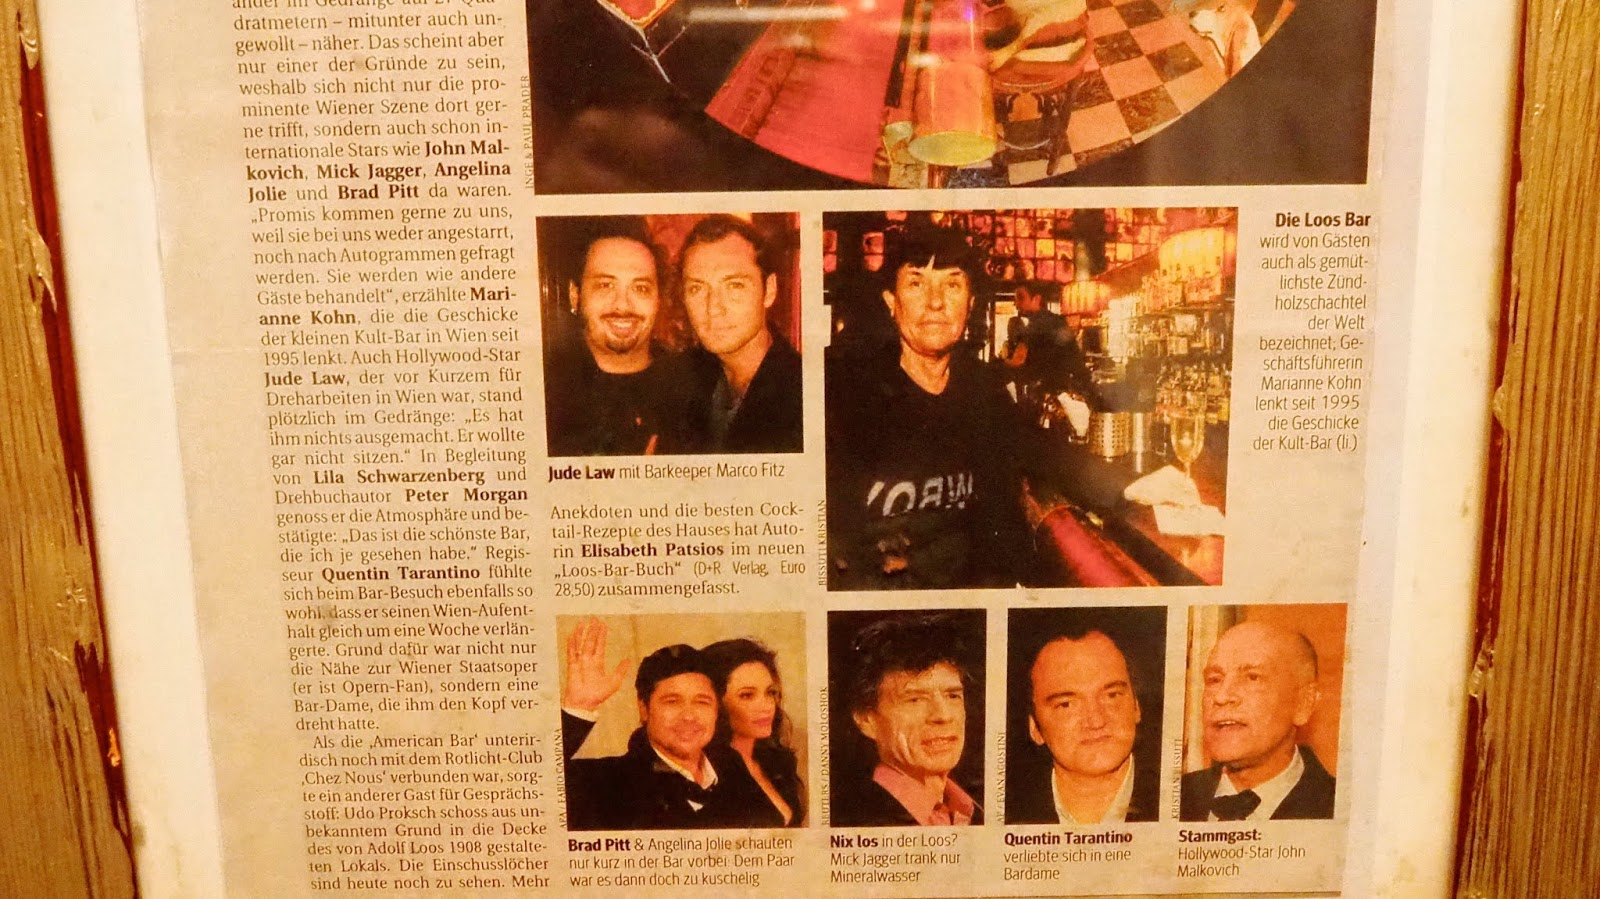 celebrities at Loos American Bar in Vienna newspaper article